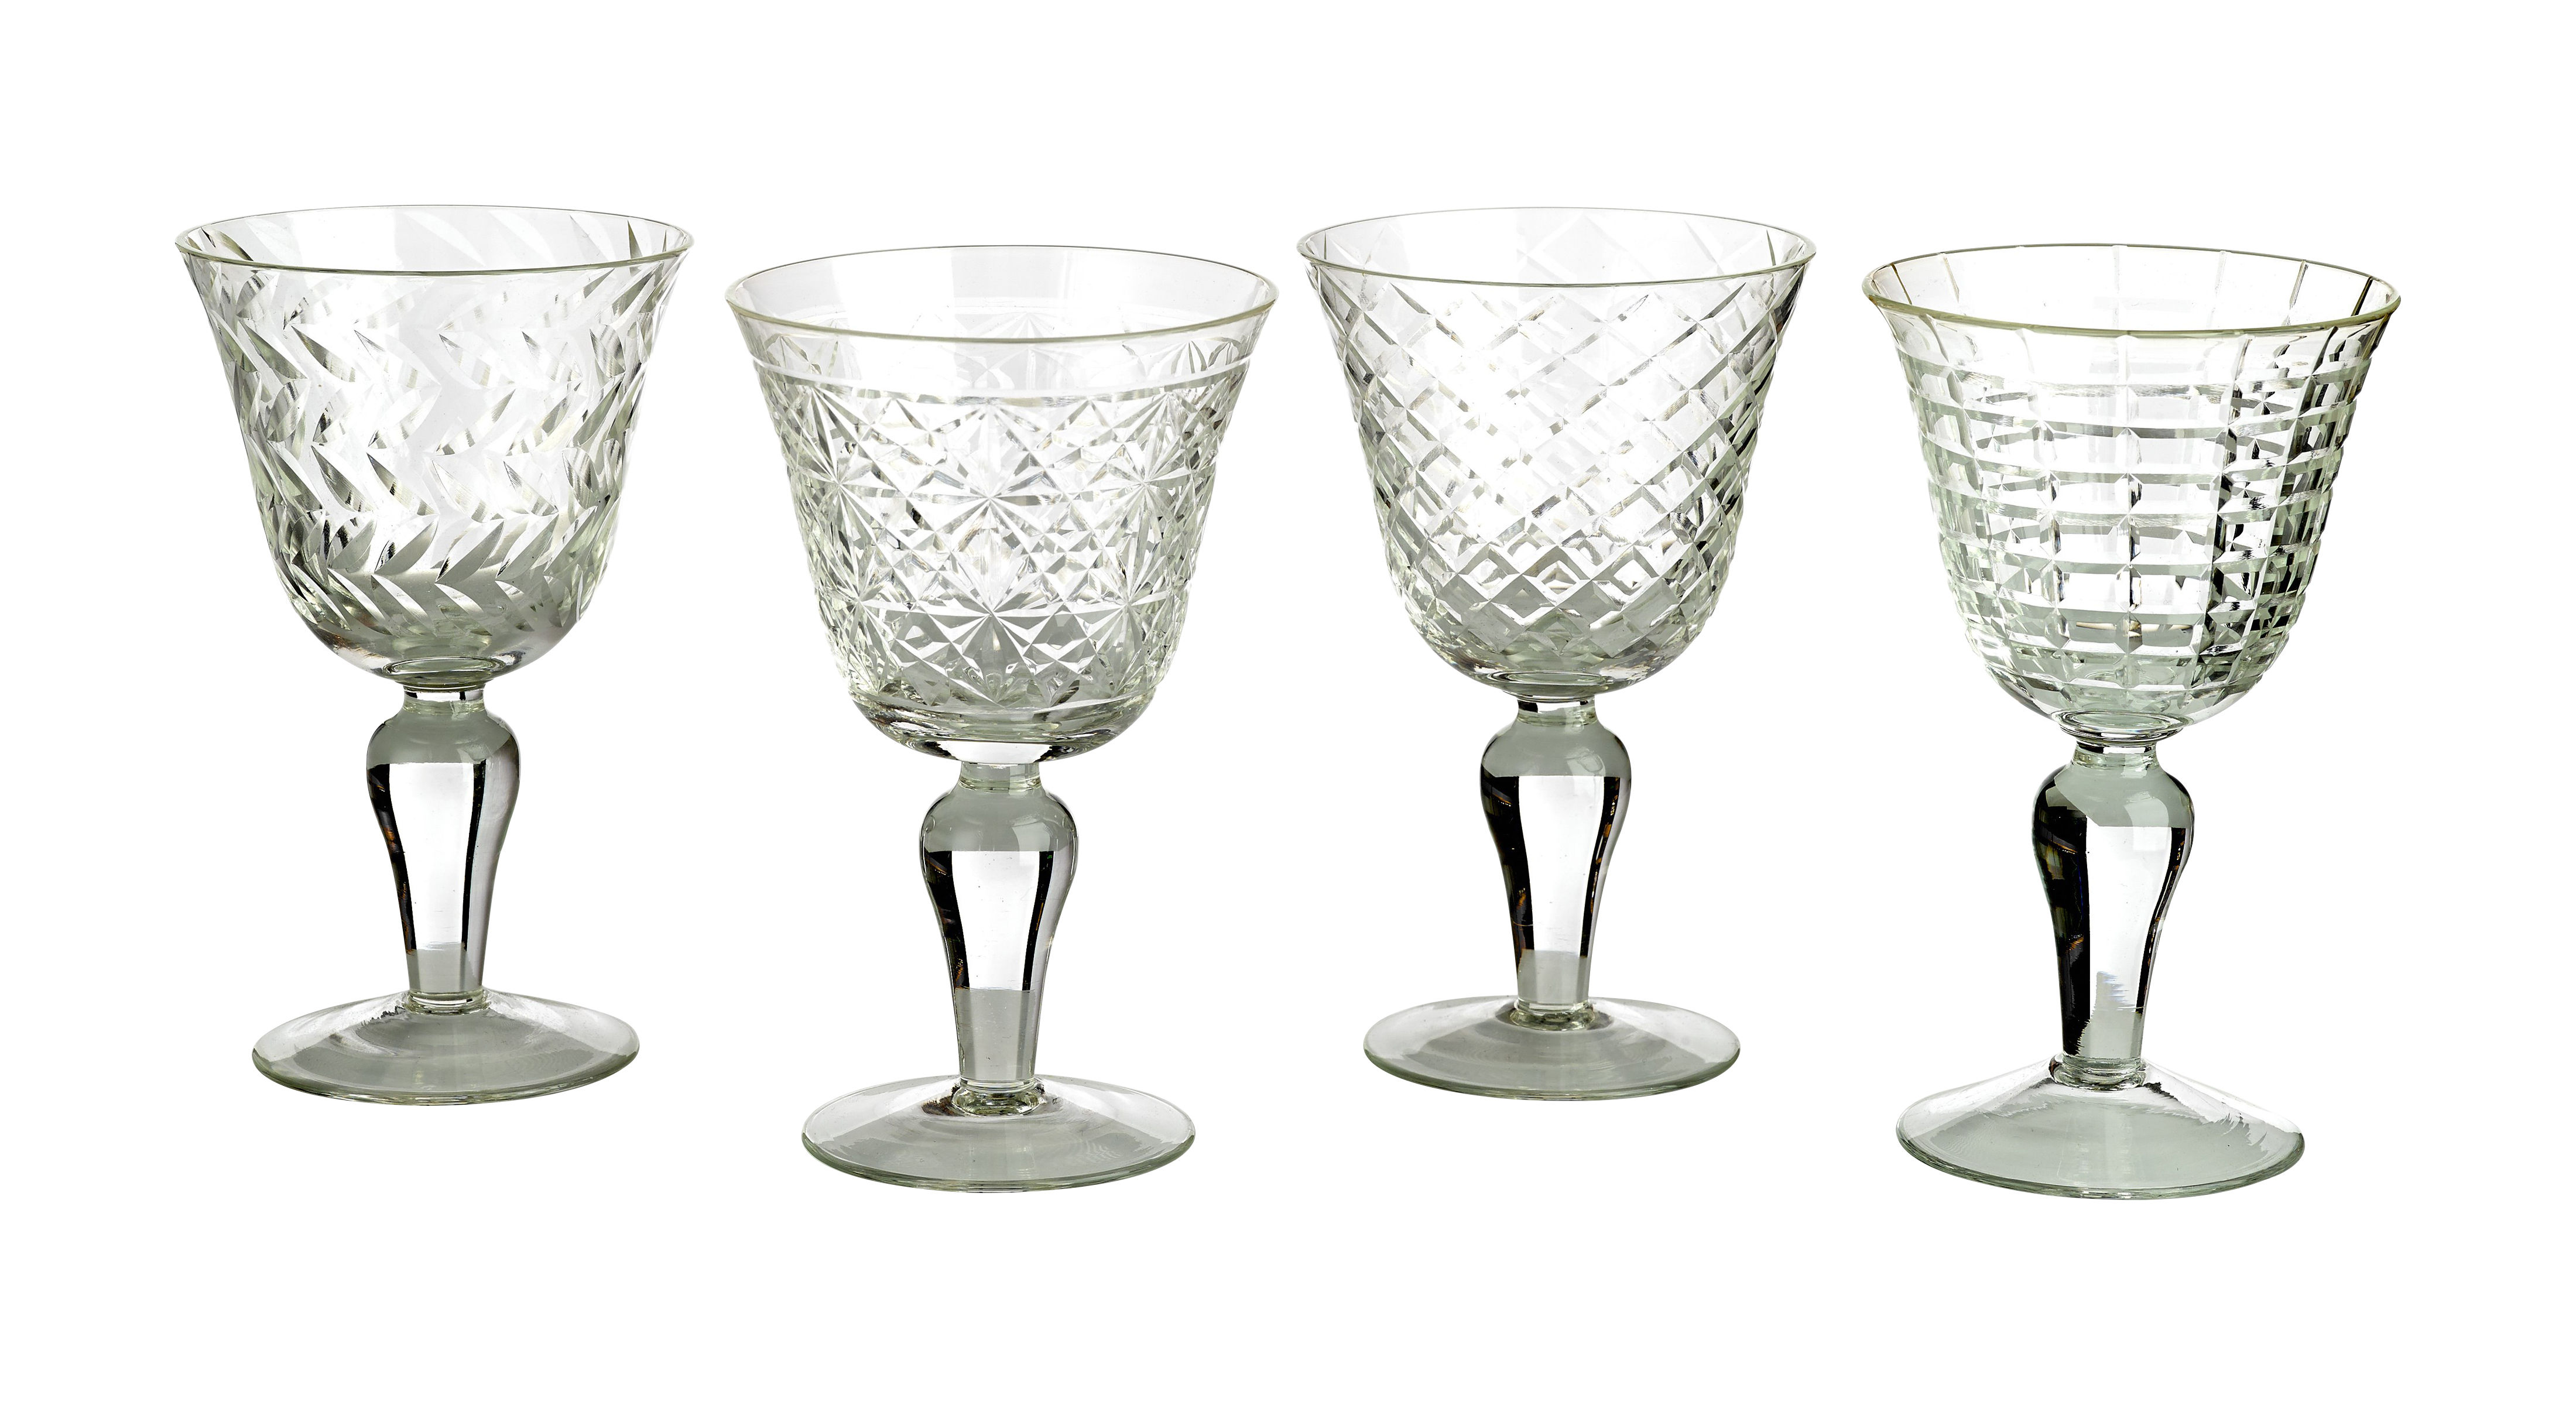 Tableware - Wine Glasses & Glassware - Cuttings Wine glass - Set of 4 by Pols Potten - Transparent - Engraved glass